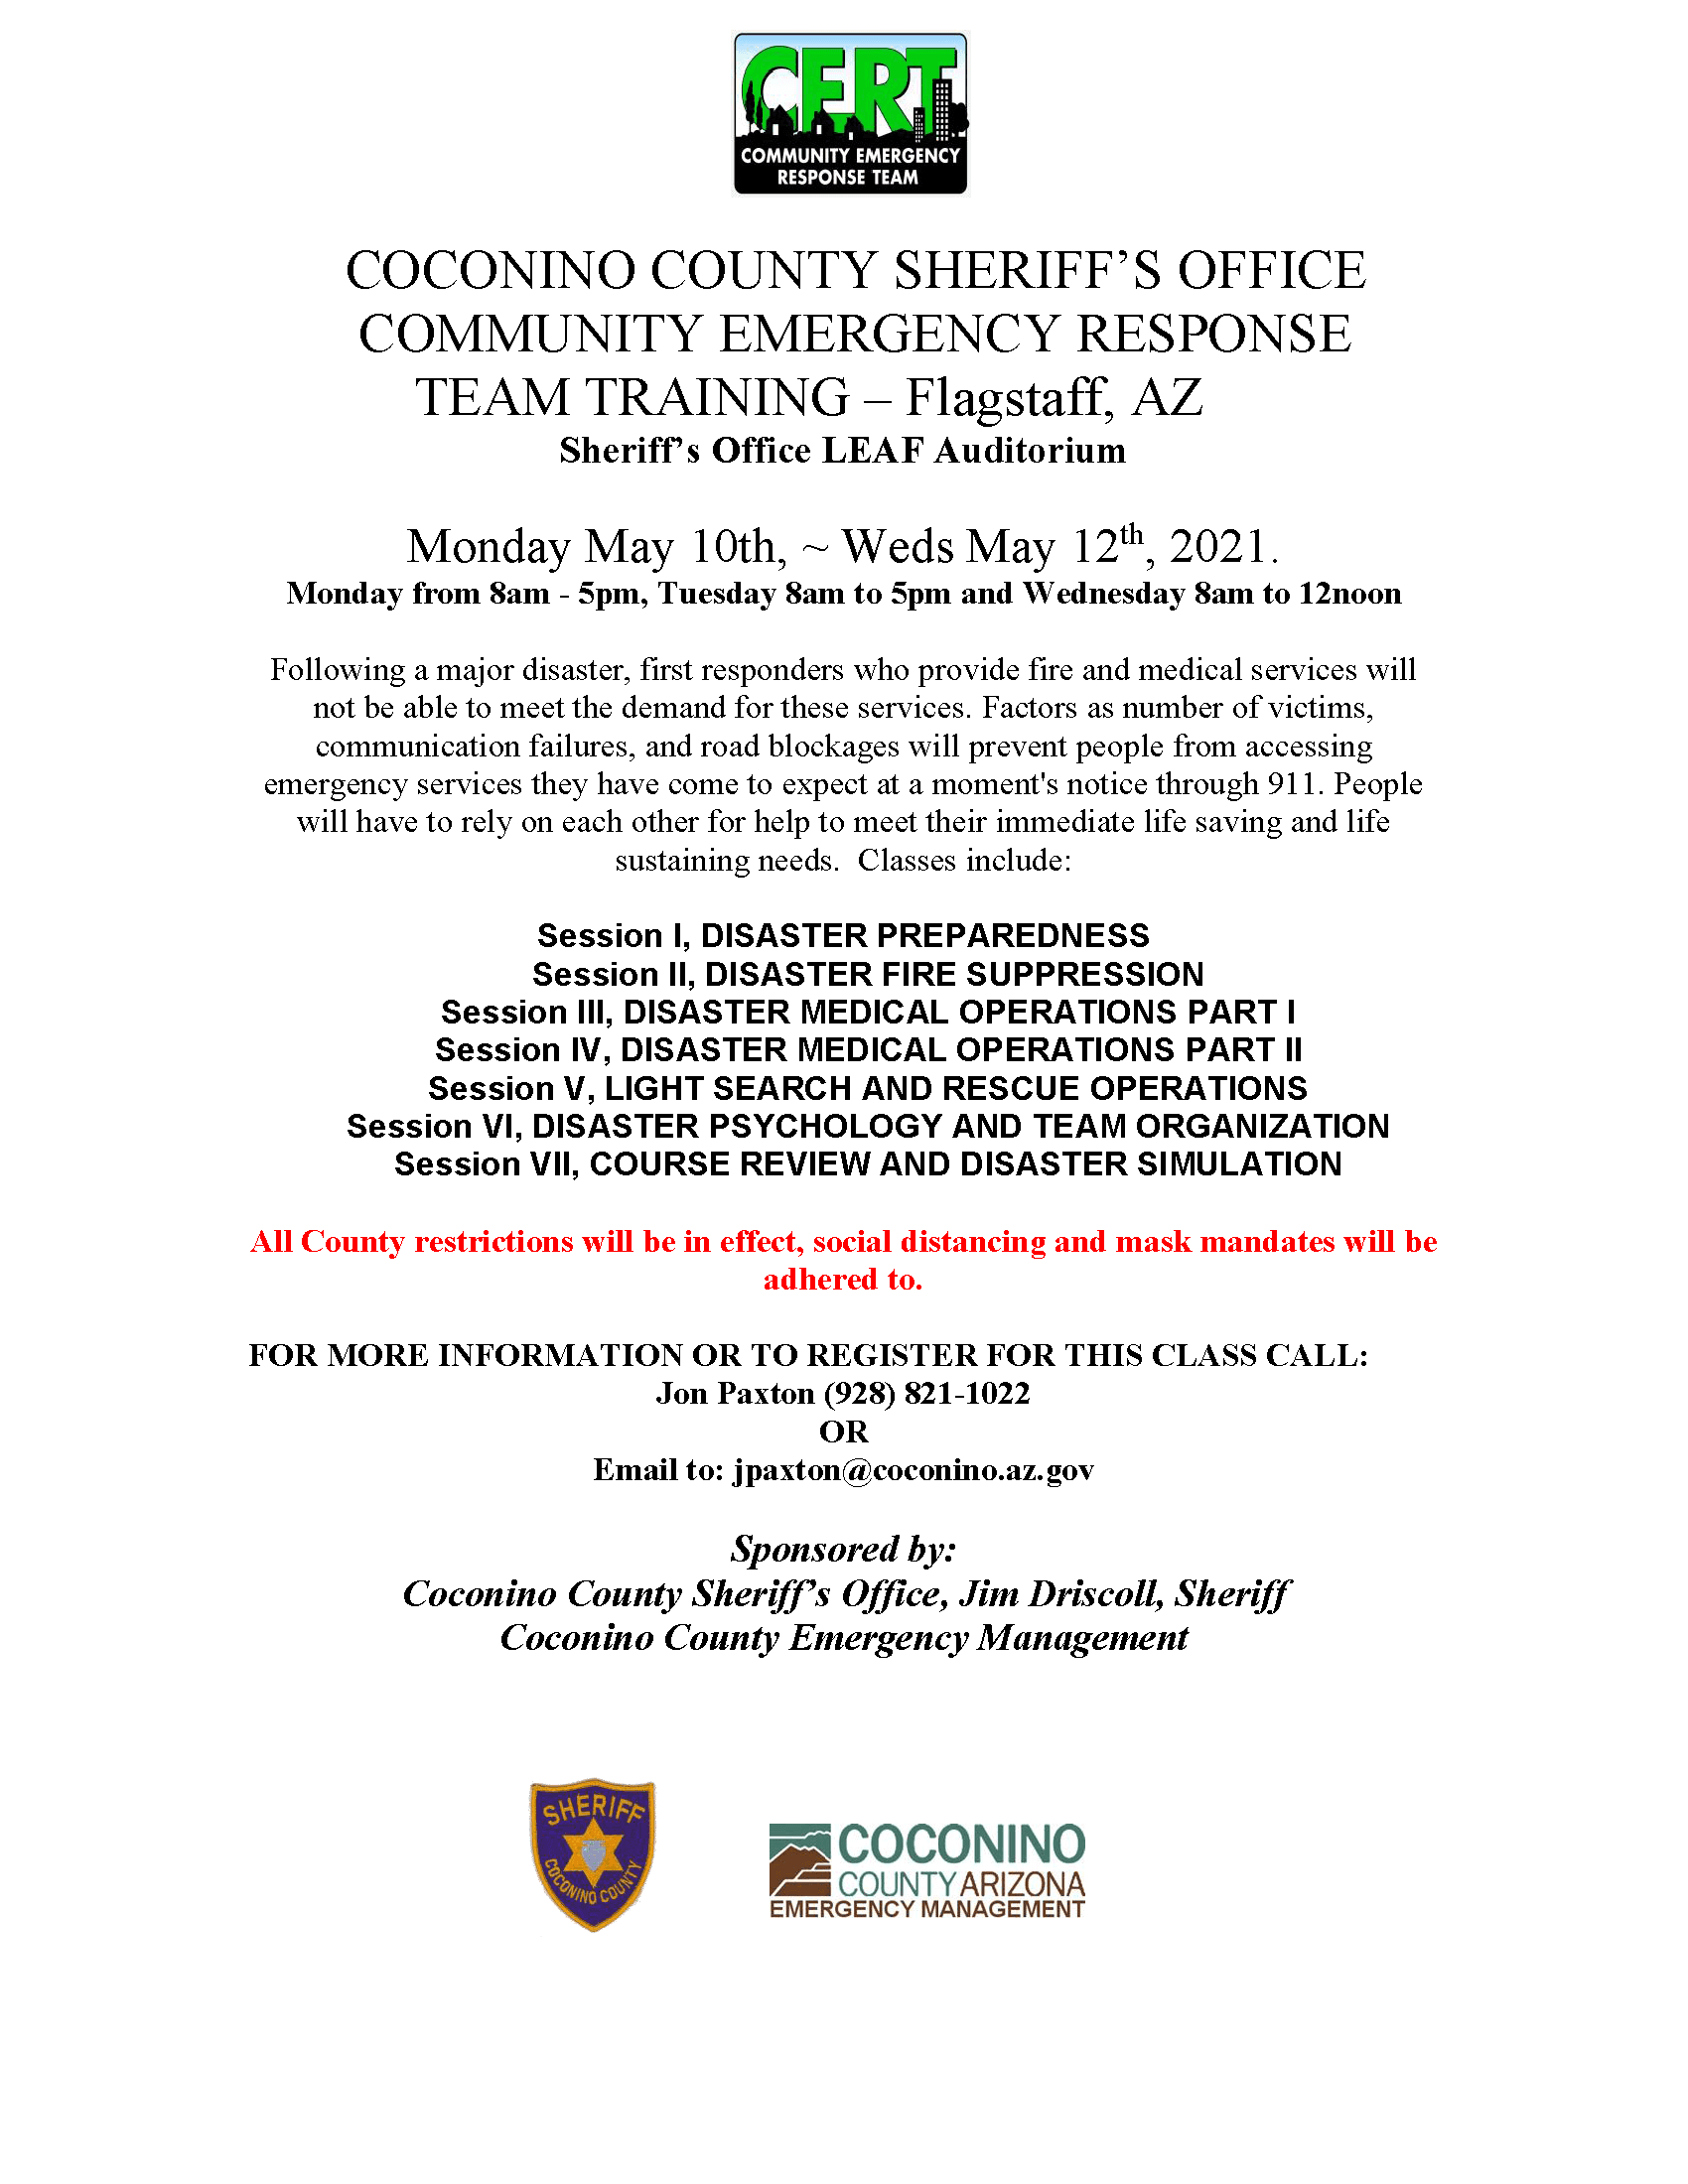 Flagstaff May 2021  CERT Class Flyer